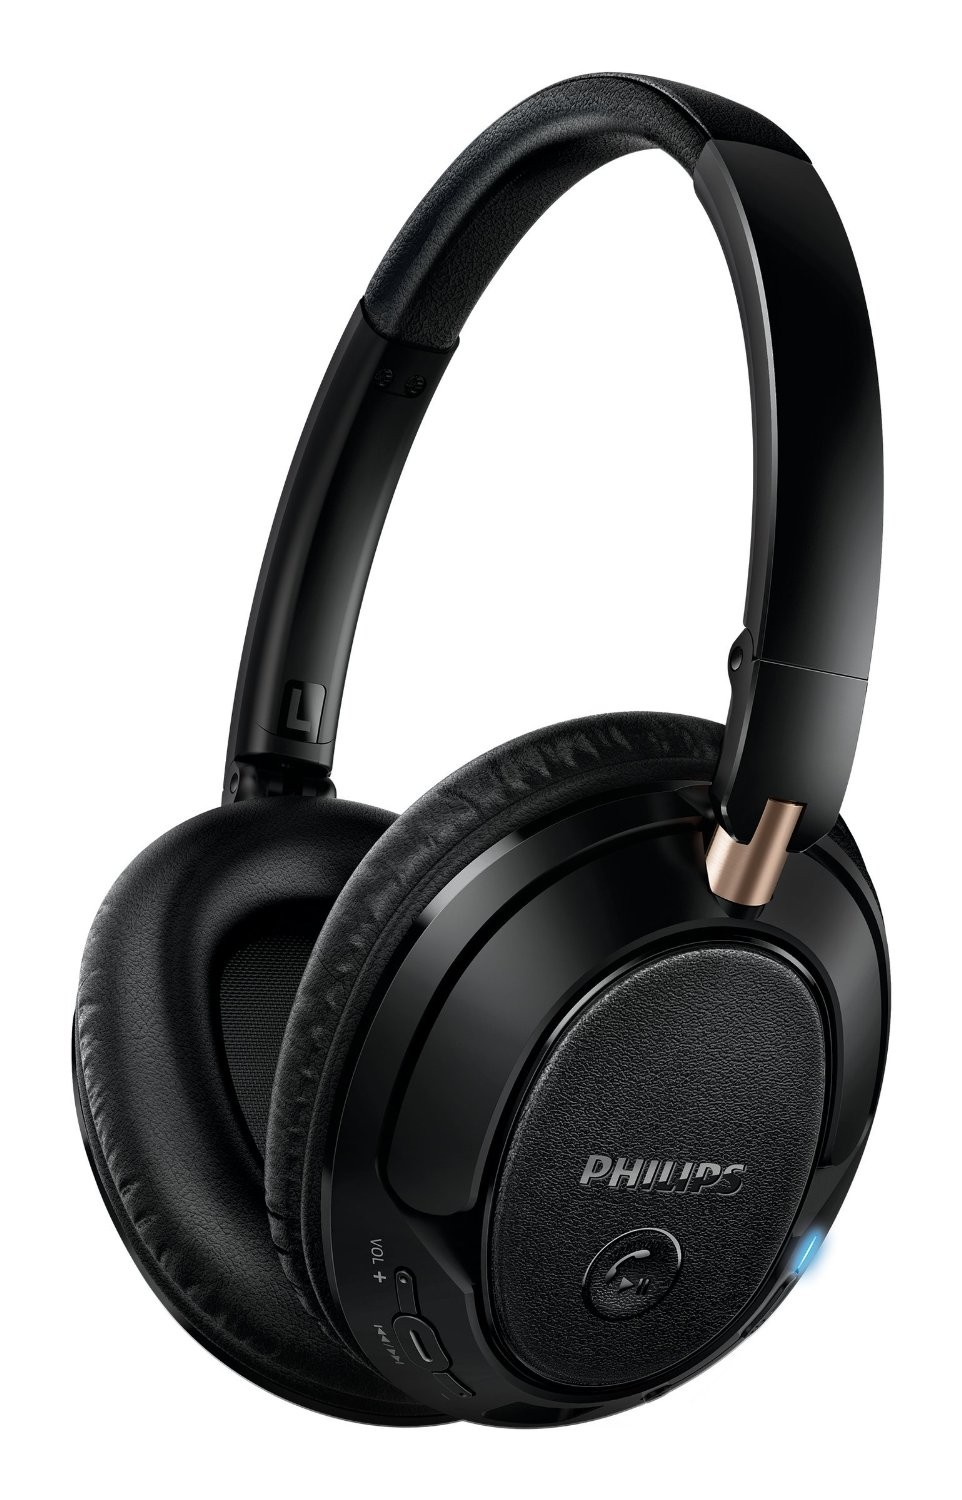 philips shb7250 00 wireless bluetooth headphones nfc bass boost genuine new ebay. Black Bedroom Furniture Sets. Home Design Ideas